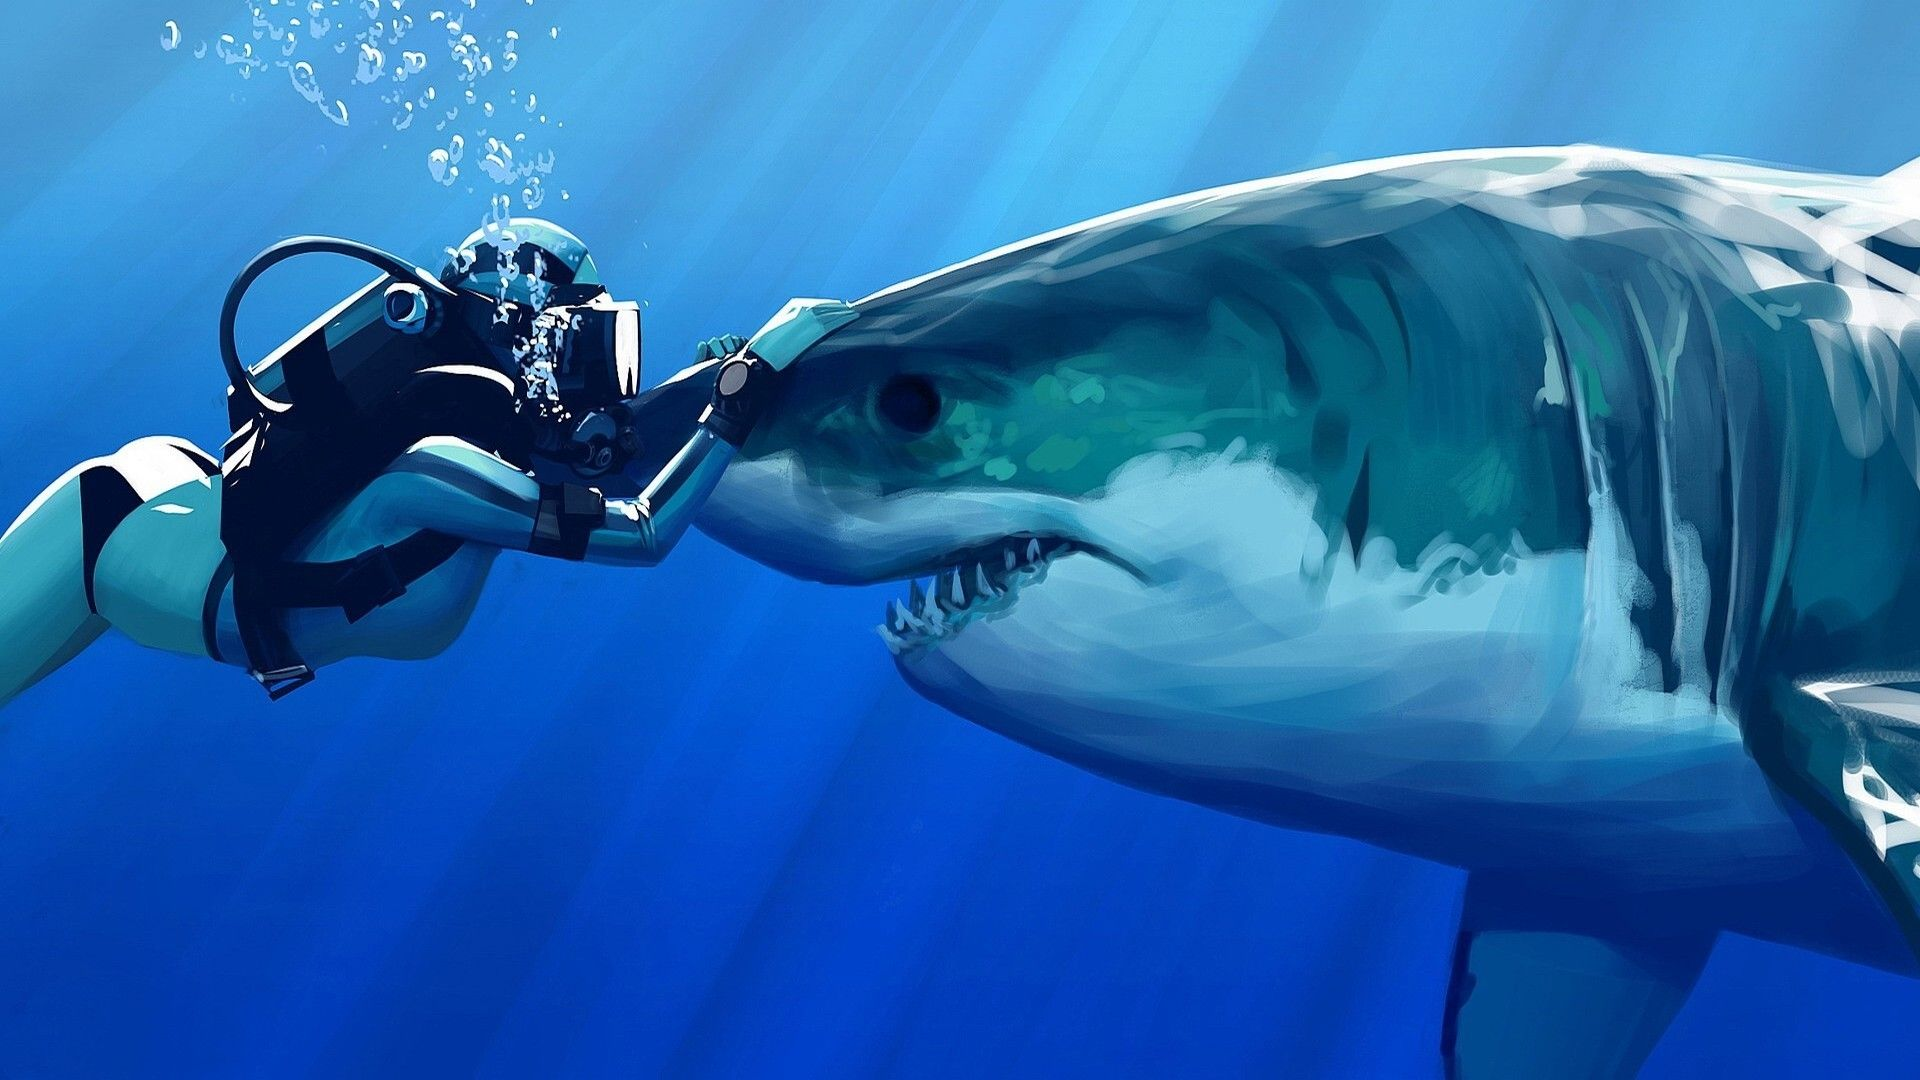 Wallpaper Shark And Diver